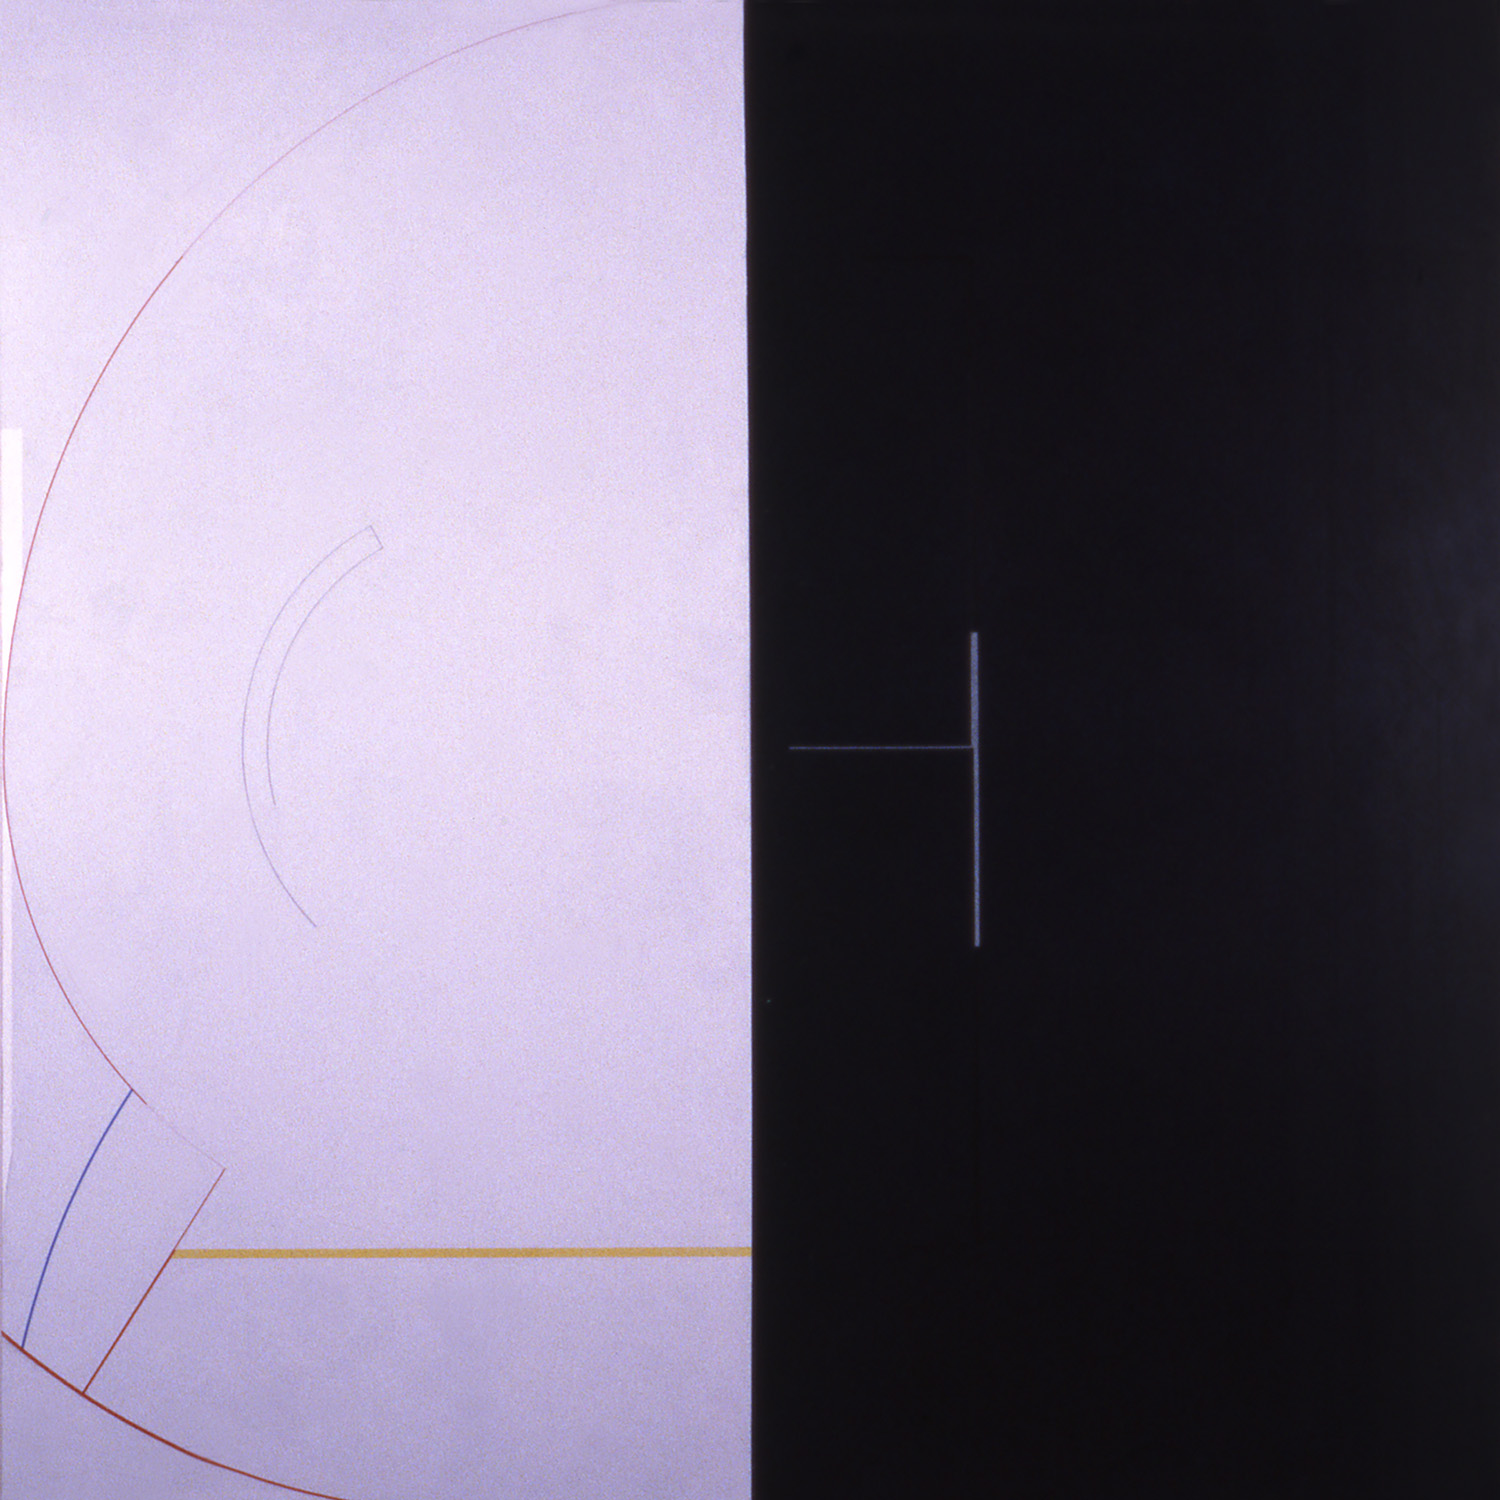 Janus VI, 1986, Acrylic on canvas over panels, 72 x 72 inches.